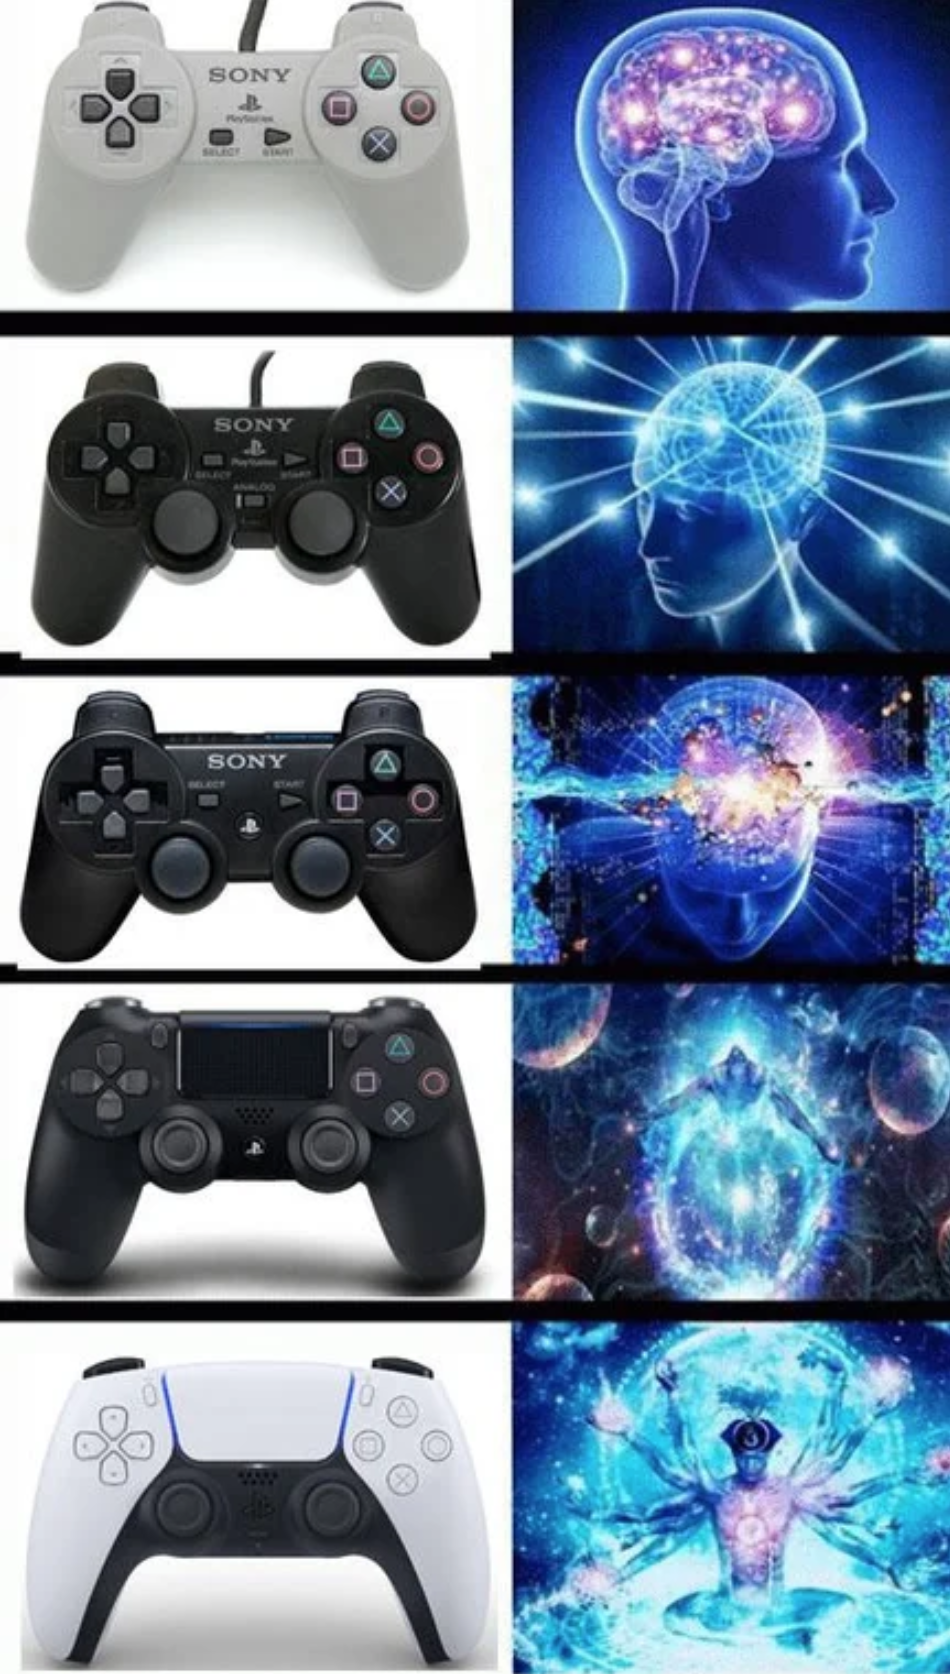 Xbox Is Better Than Playstation Memes : better, playstation, memes, PlayStation, Controller, Memes, Around, Funny, Gallery